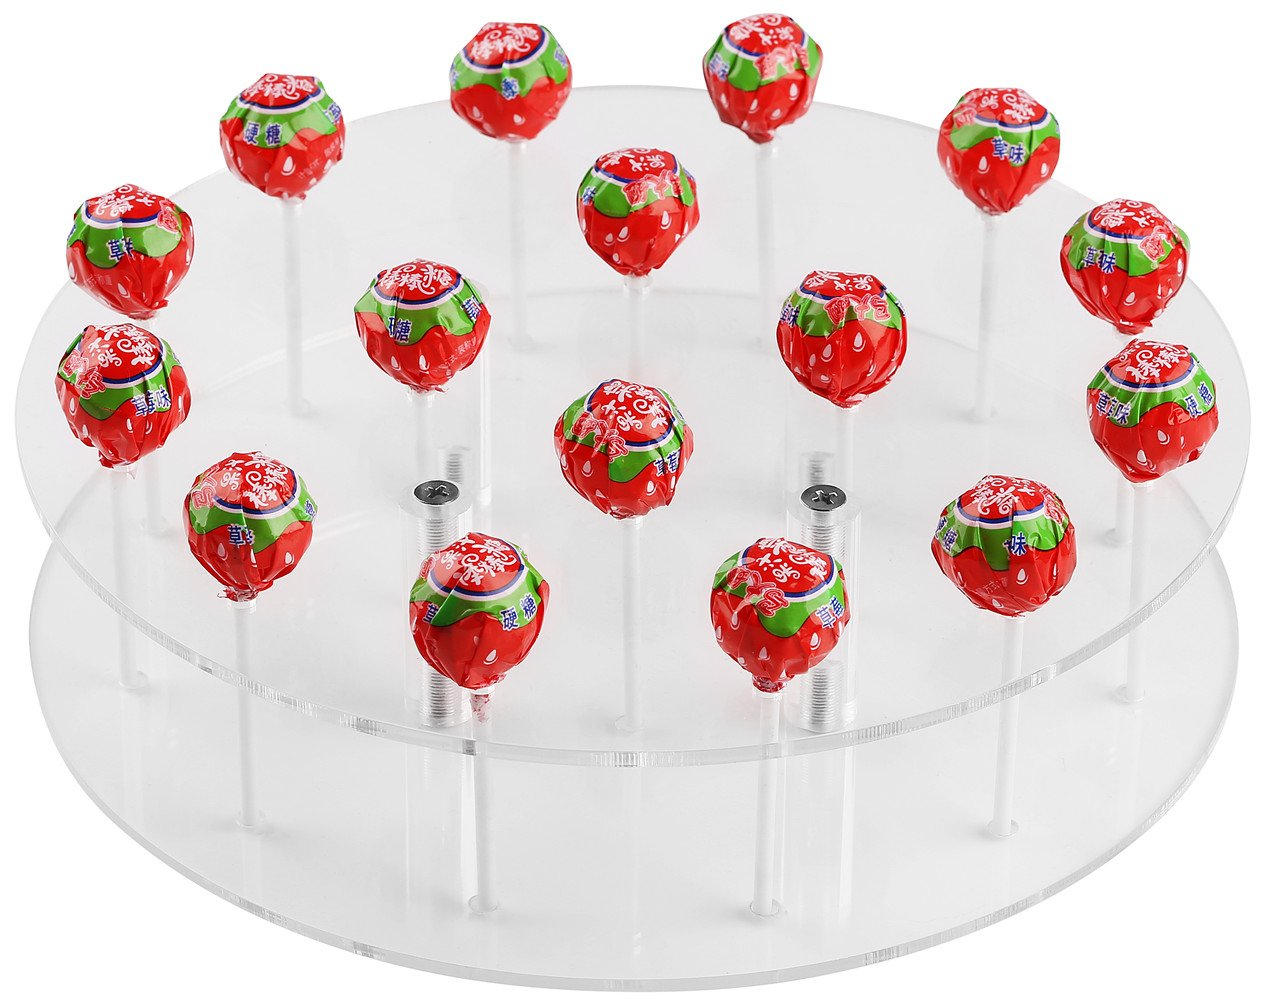 YestBuy Round Shaped Acrylic Cake Pop Stand 1 pc /Pack